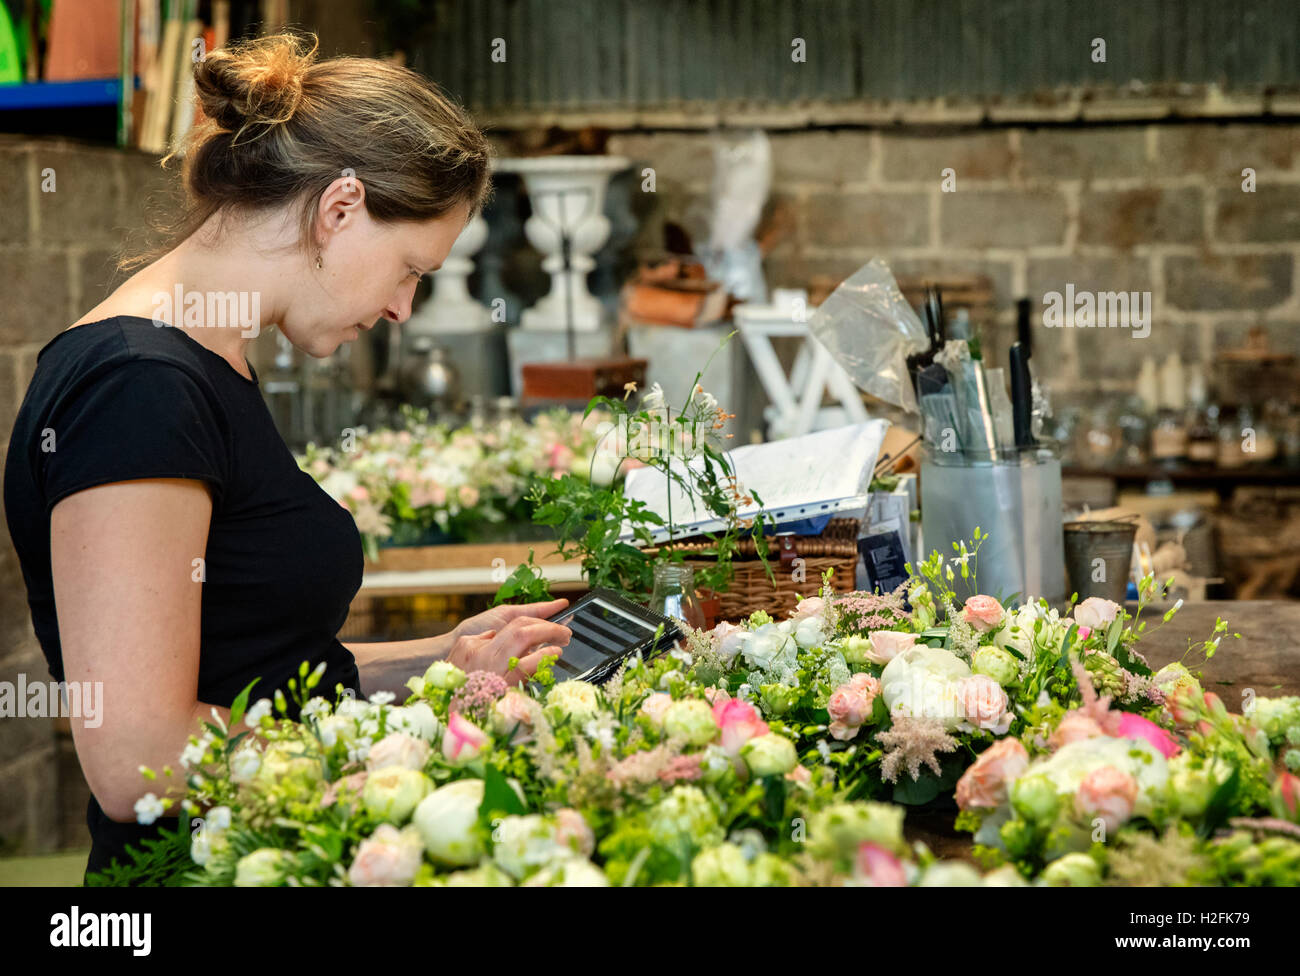 A florist working using a digital tablet by a workench of small flower arrangements. - Stock Image